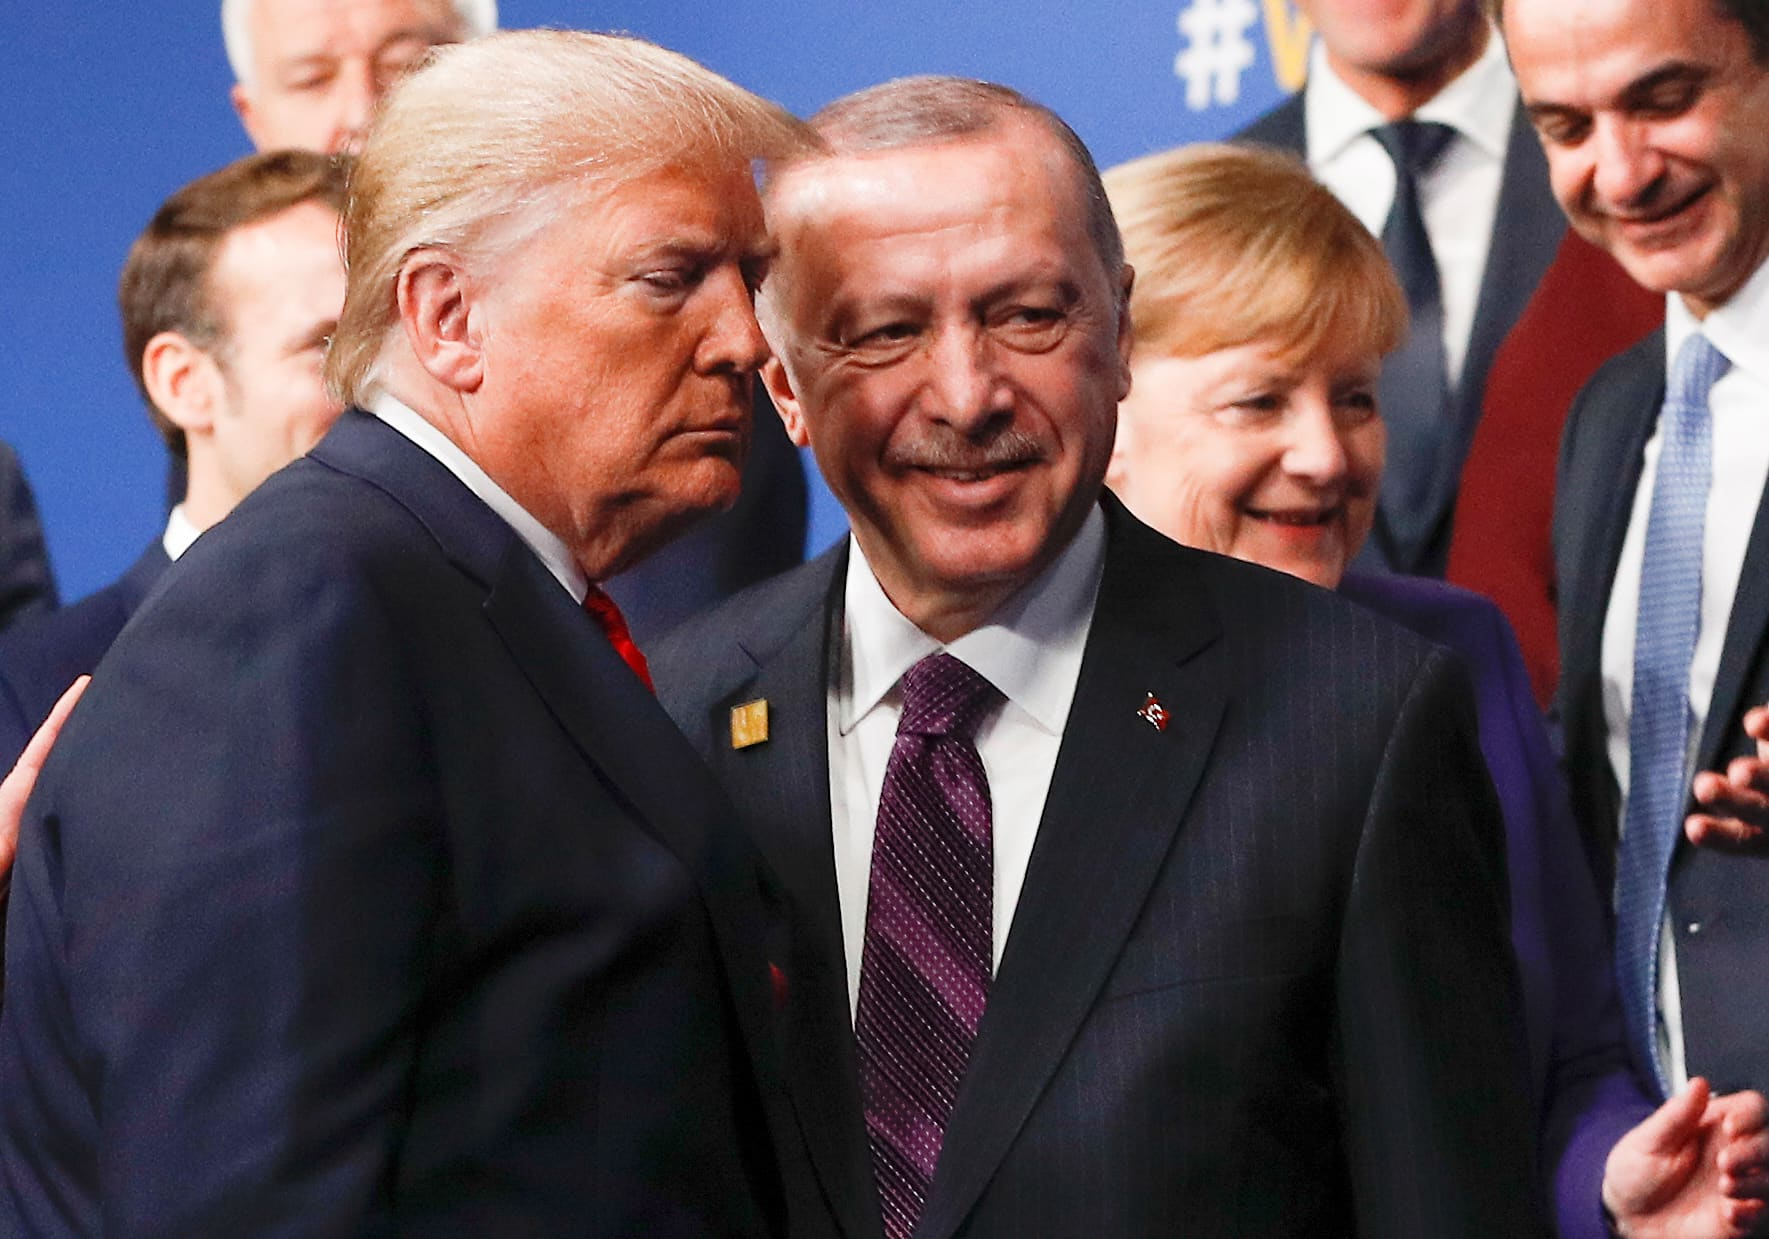 Erdogan, Trump have 'very productive' meeting at NATO summit: Turkish official